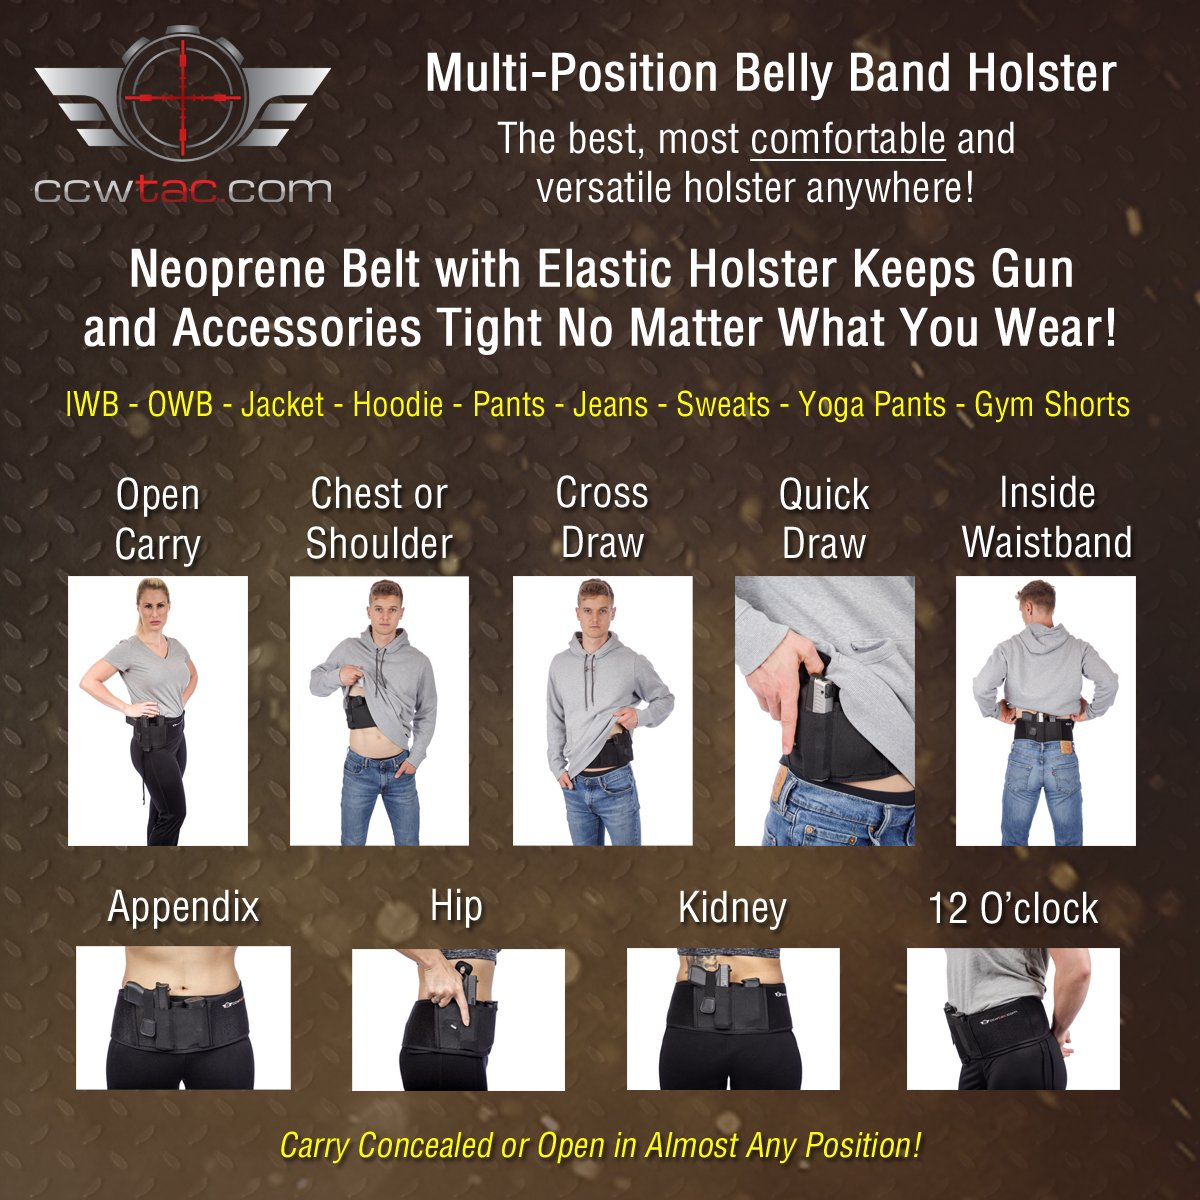 IWB Belly Band Holster by CCW Tactical